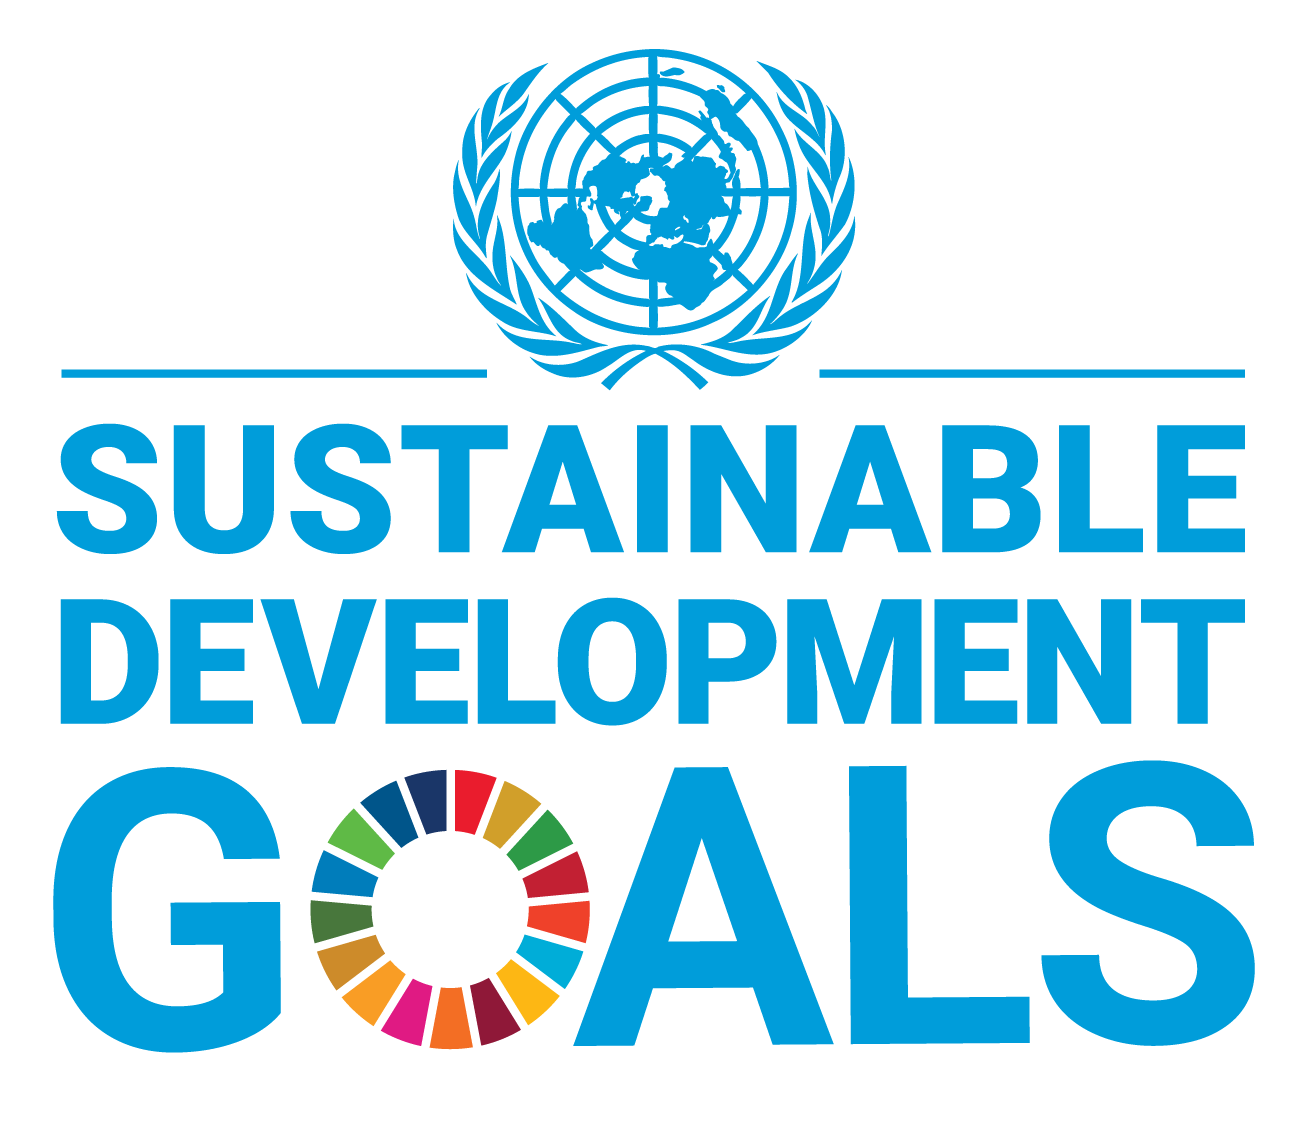 About the SDGs